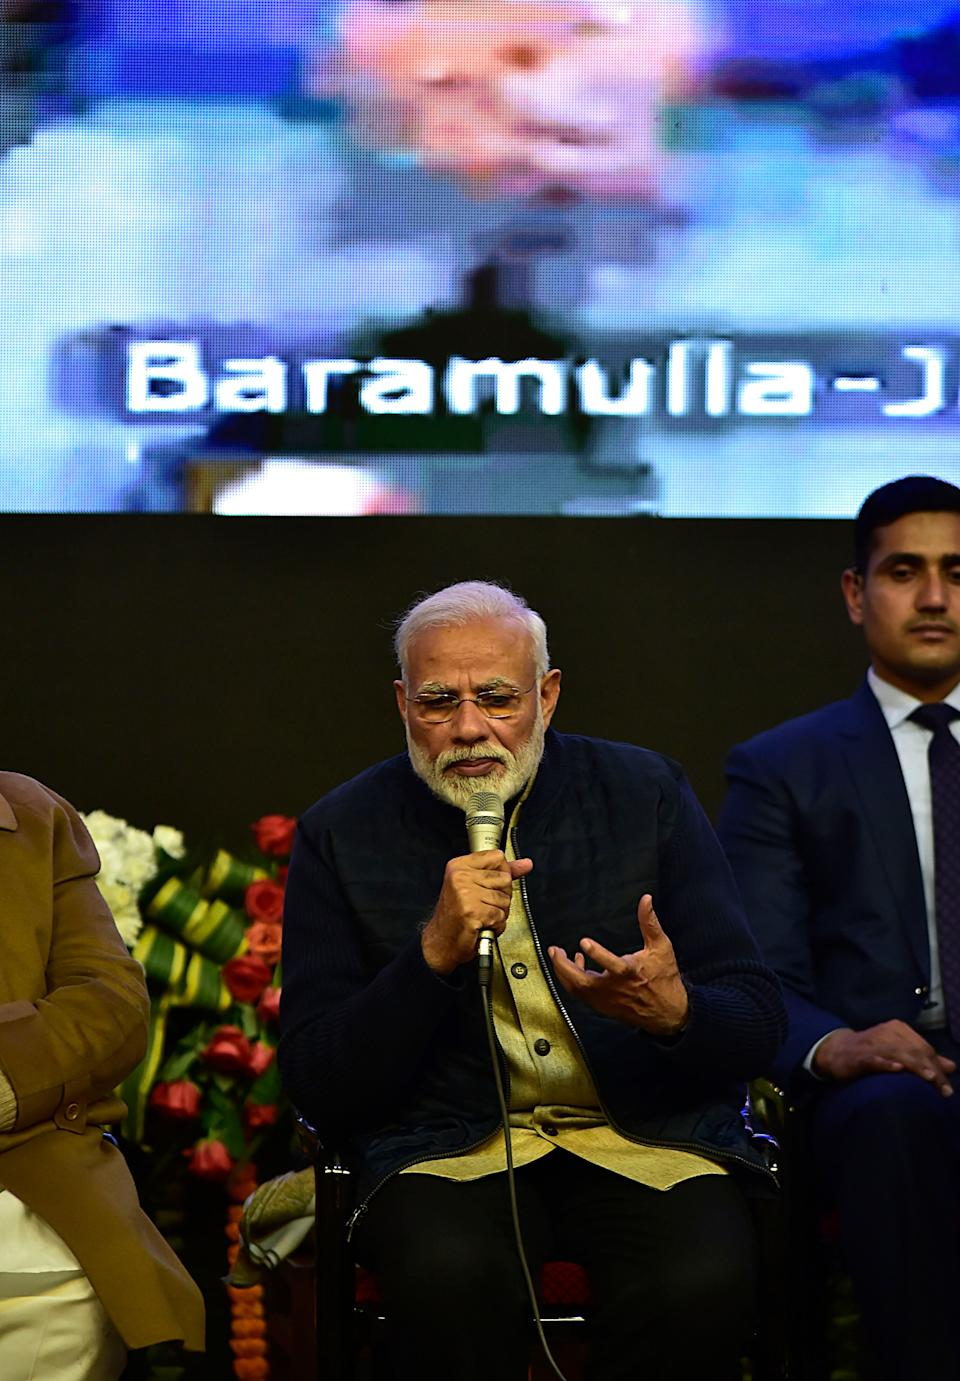 Indian Prime Minister Narendra Modi answers a question during an online interaction with students of different colleges and universities of India in Srinagar, Kashmir on February 03, 2019. Modi is on a day long visit to Jammu, Ladakh and the Kashmir Valley to lay foundation stones of projects worth Rs 35,000 crore and inaugurate projects worth Rs 9,000 crore.A complete shutdown was observed across the Kashmir valley against the visit of Indian Prime Minister Narendra Modi. The shutdown was called by the Kashmiri separatist leaders.Shops and business establishments were closed and traffic was off the roads.Restrictions were also imposed on public moment in many parts of the Srinagar city. (Photo by Faisal Khan/NurPhoto via Getty Images)